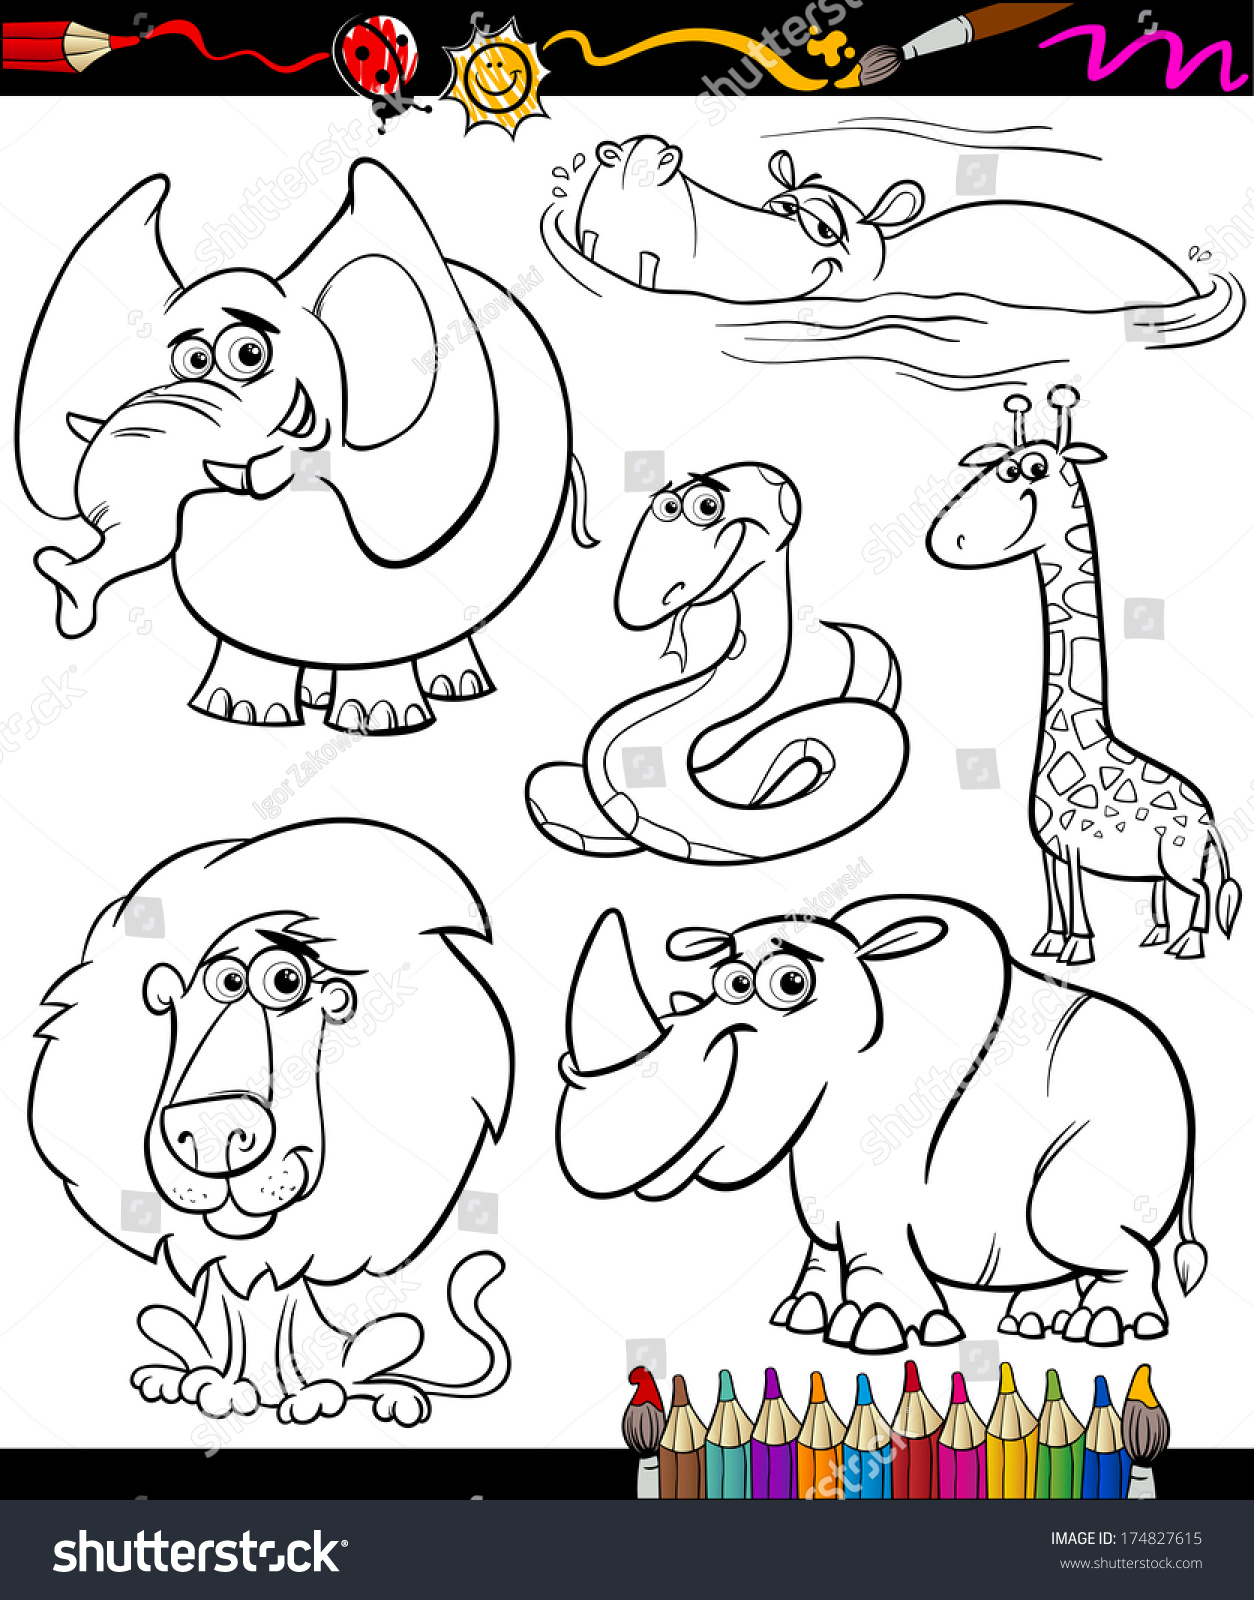 stock vector coloring book or page cartoon vector illustration set of black and white wild animals characters